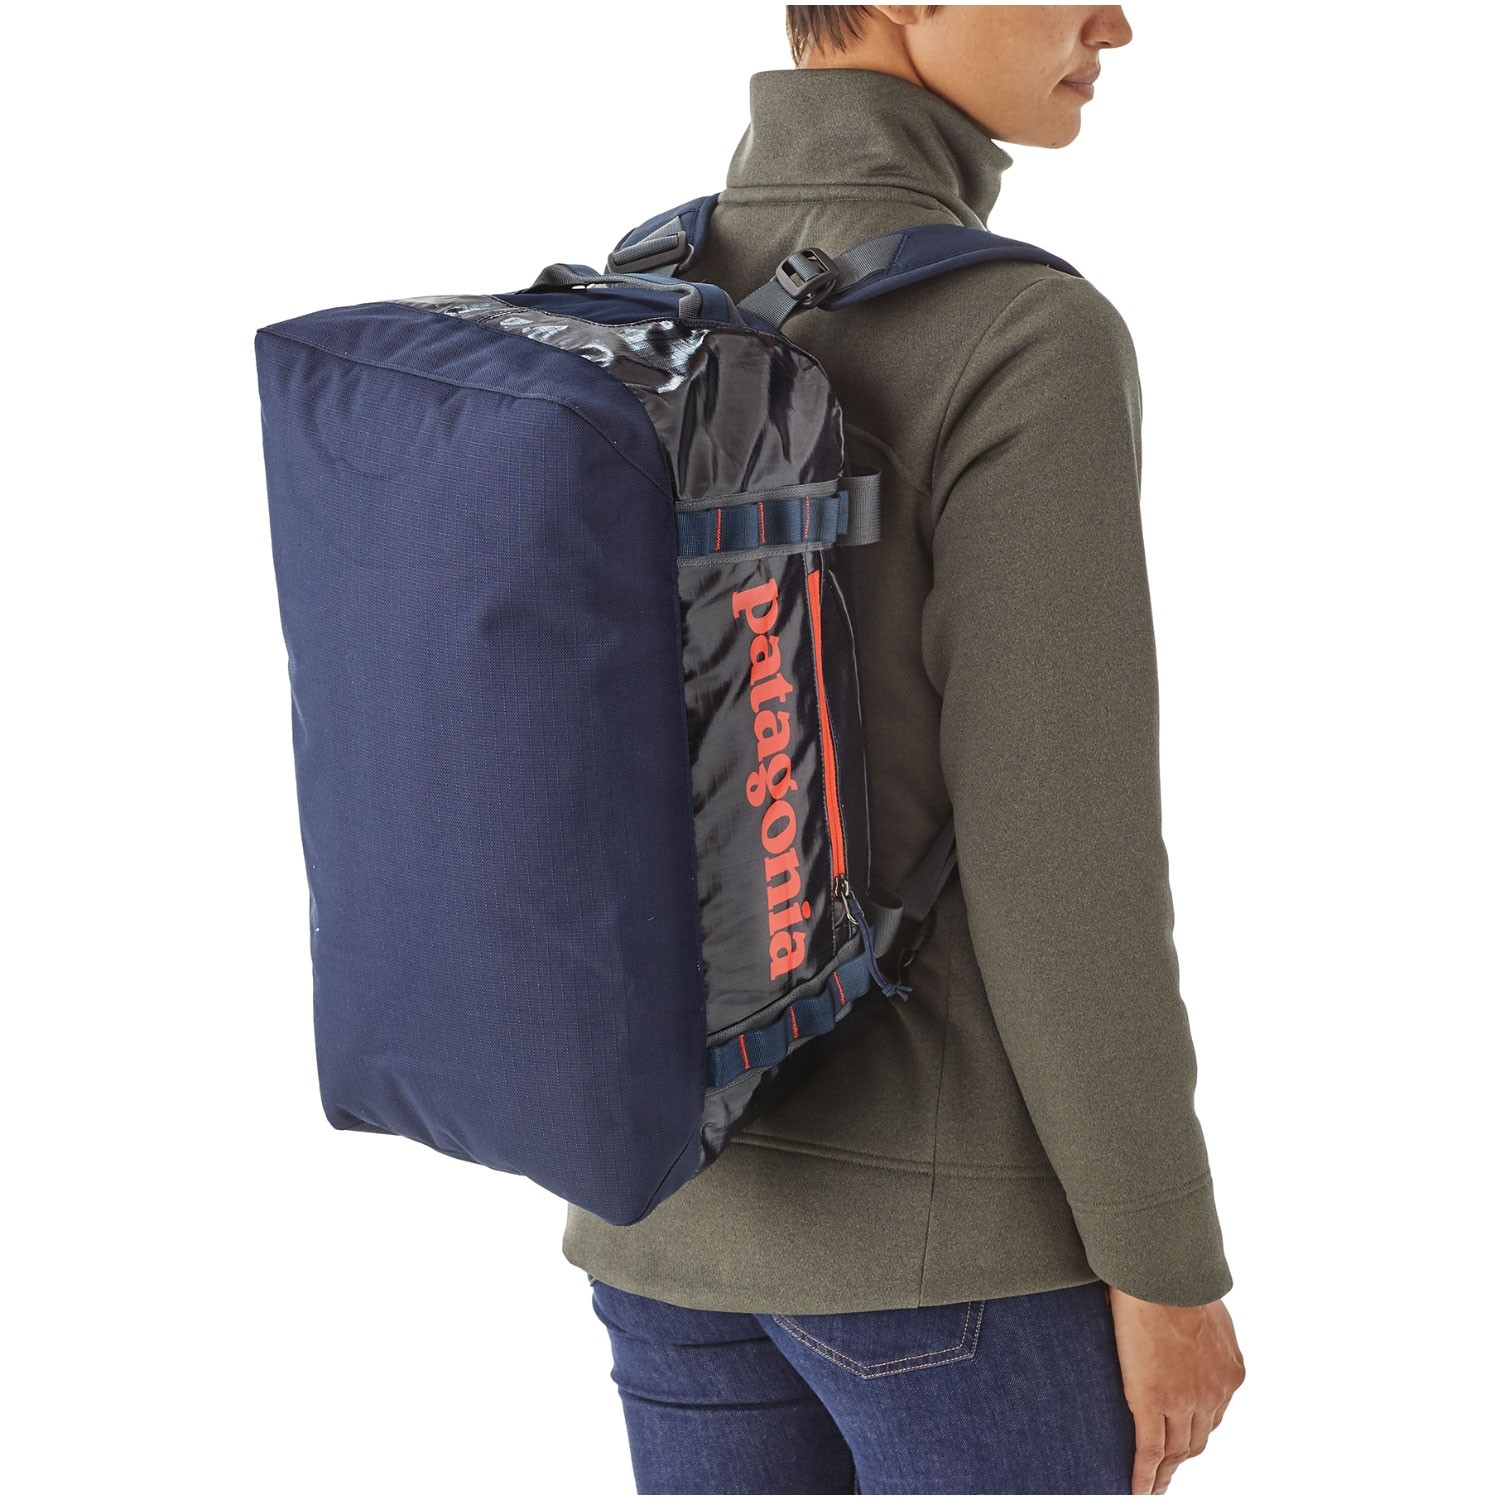 Patagonia-Black-Hole-Duffel-45L-Navy-Blue-w-Paintbrush-Red-OM2-OM-AW17.jpg